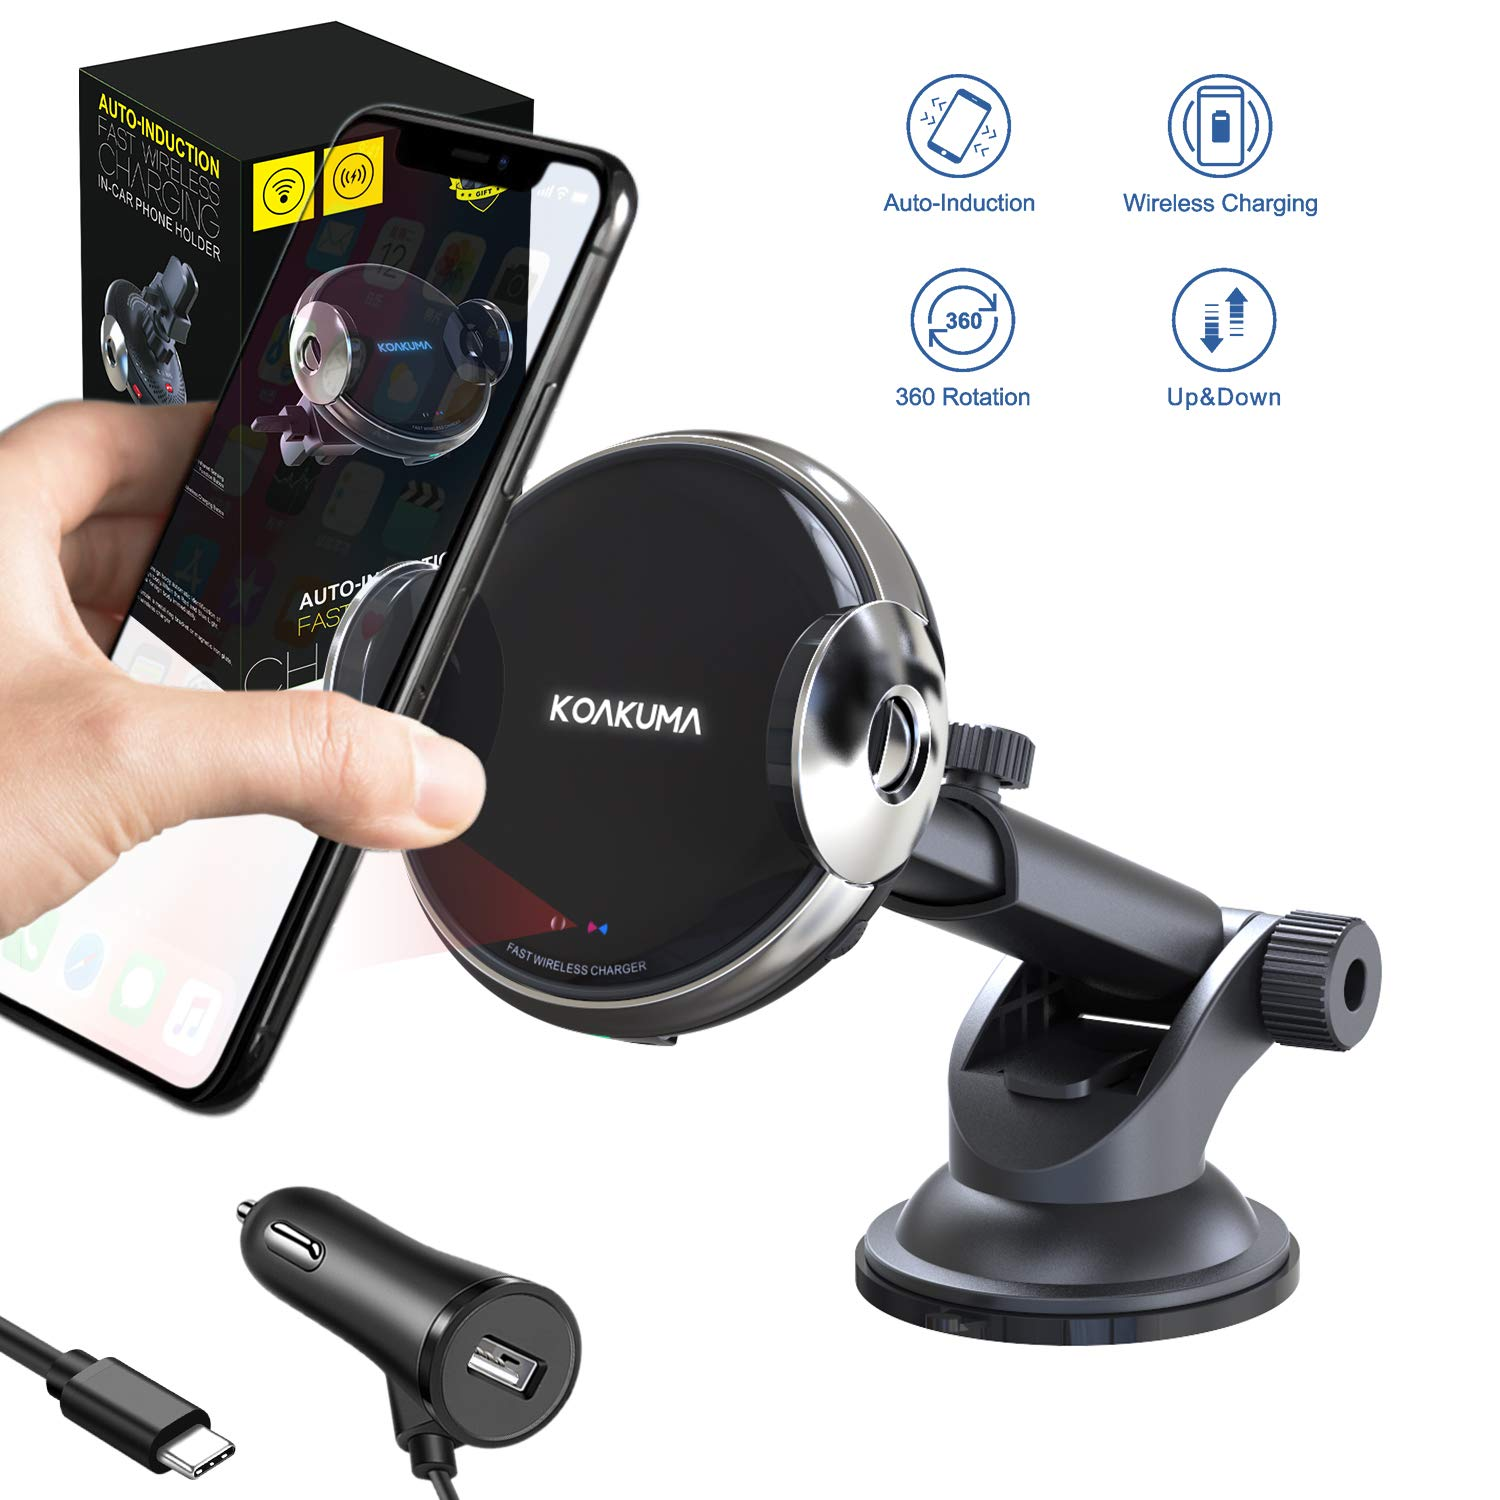 KOAKUMA Wireless Car Charger Mount, Automatic Clamping Wireless Charging Phone Holder for Car, 15W Qi-Certified Compatible iPhone 11 Pro Max/Xs Max/X/XS/XR/8, Samsung Galaxy S10/S10+/S9/S9+ Note9 by KOAKUMA